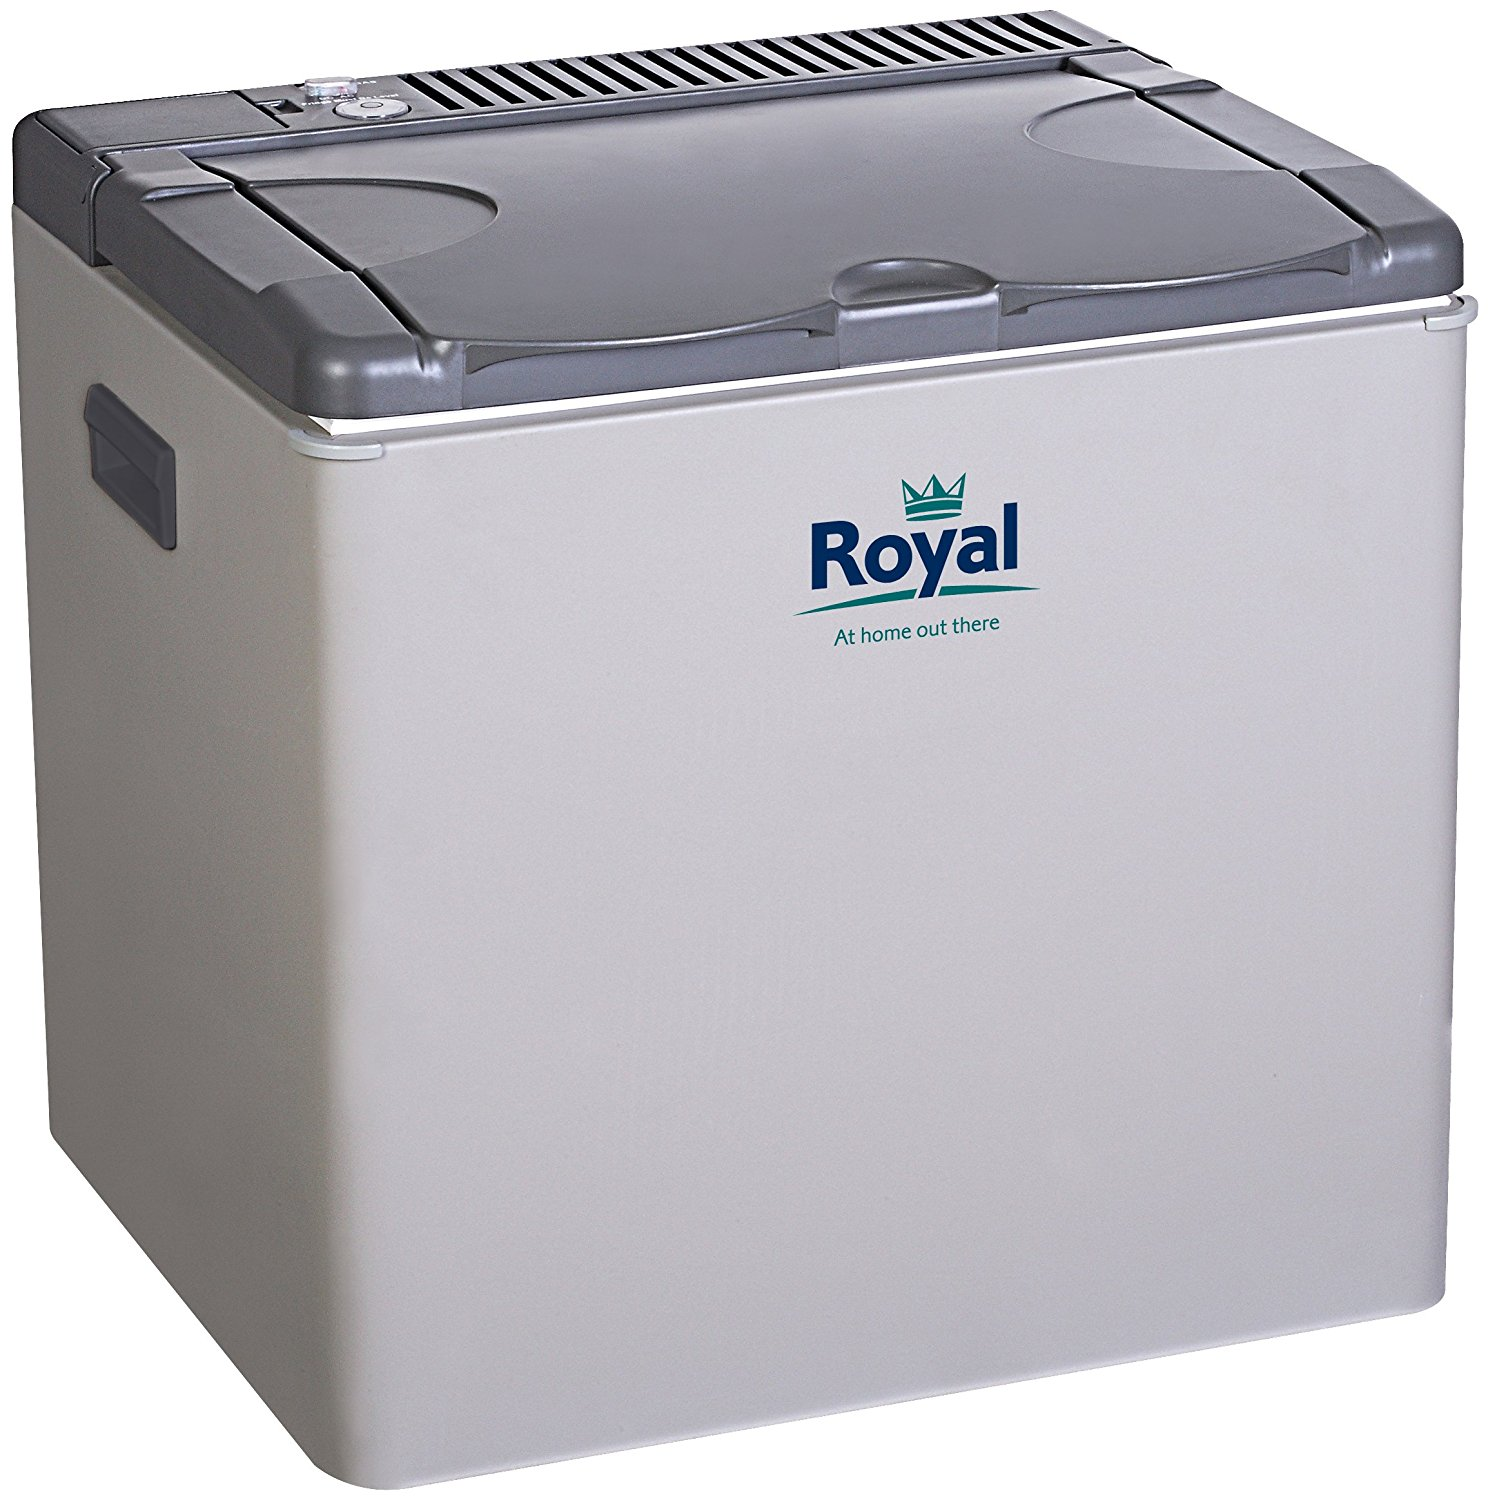 Royal 3 Way Absorption 42 Litre Cooler